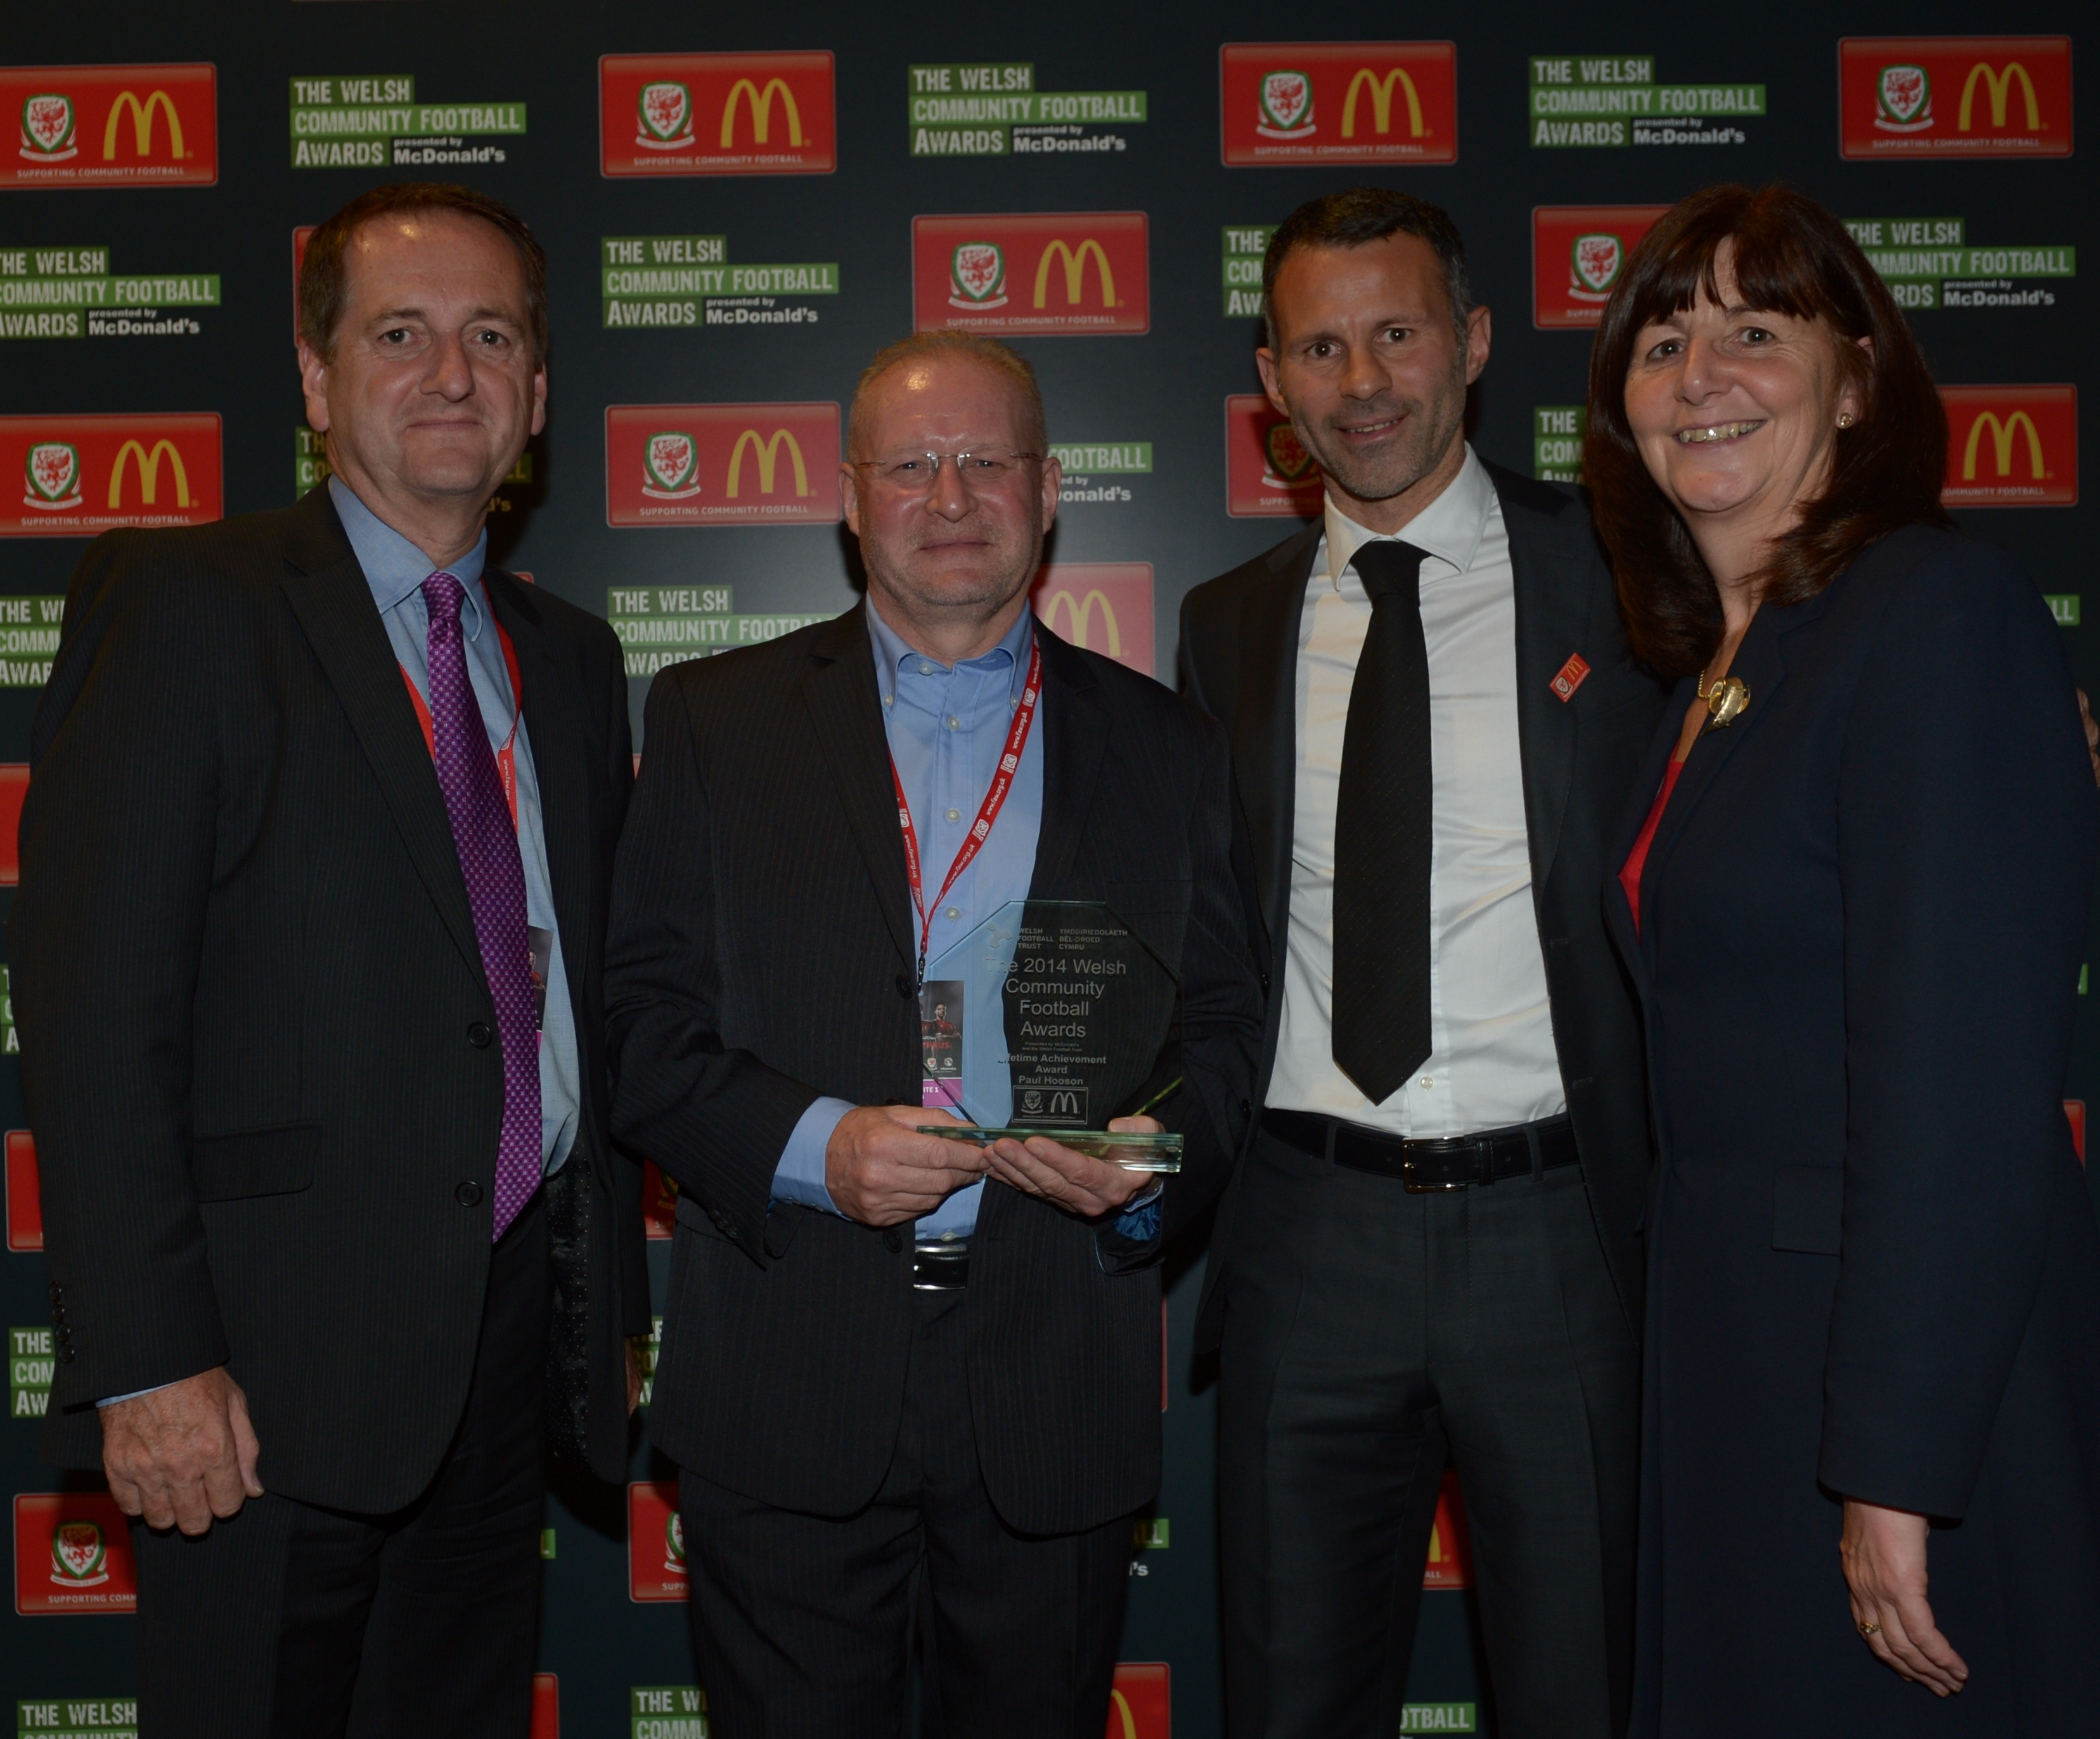 Welsh Community Football Awards Regional Winners